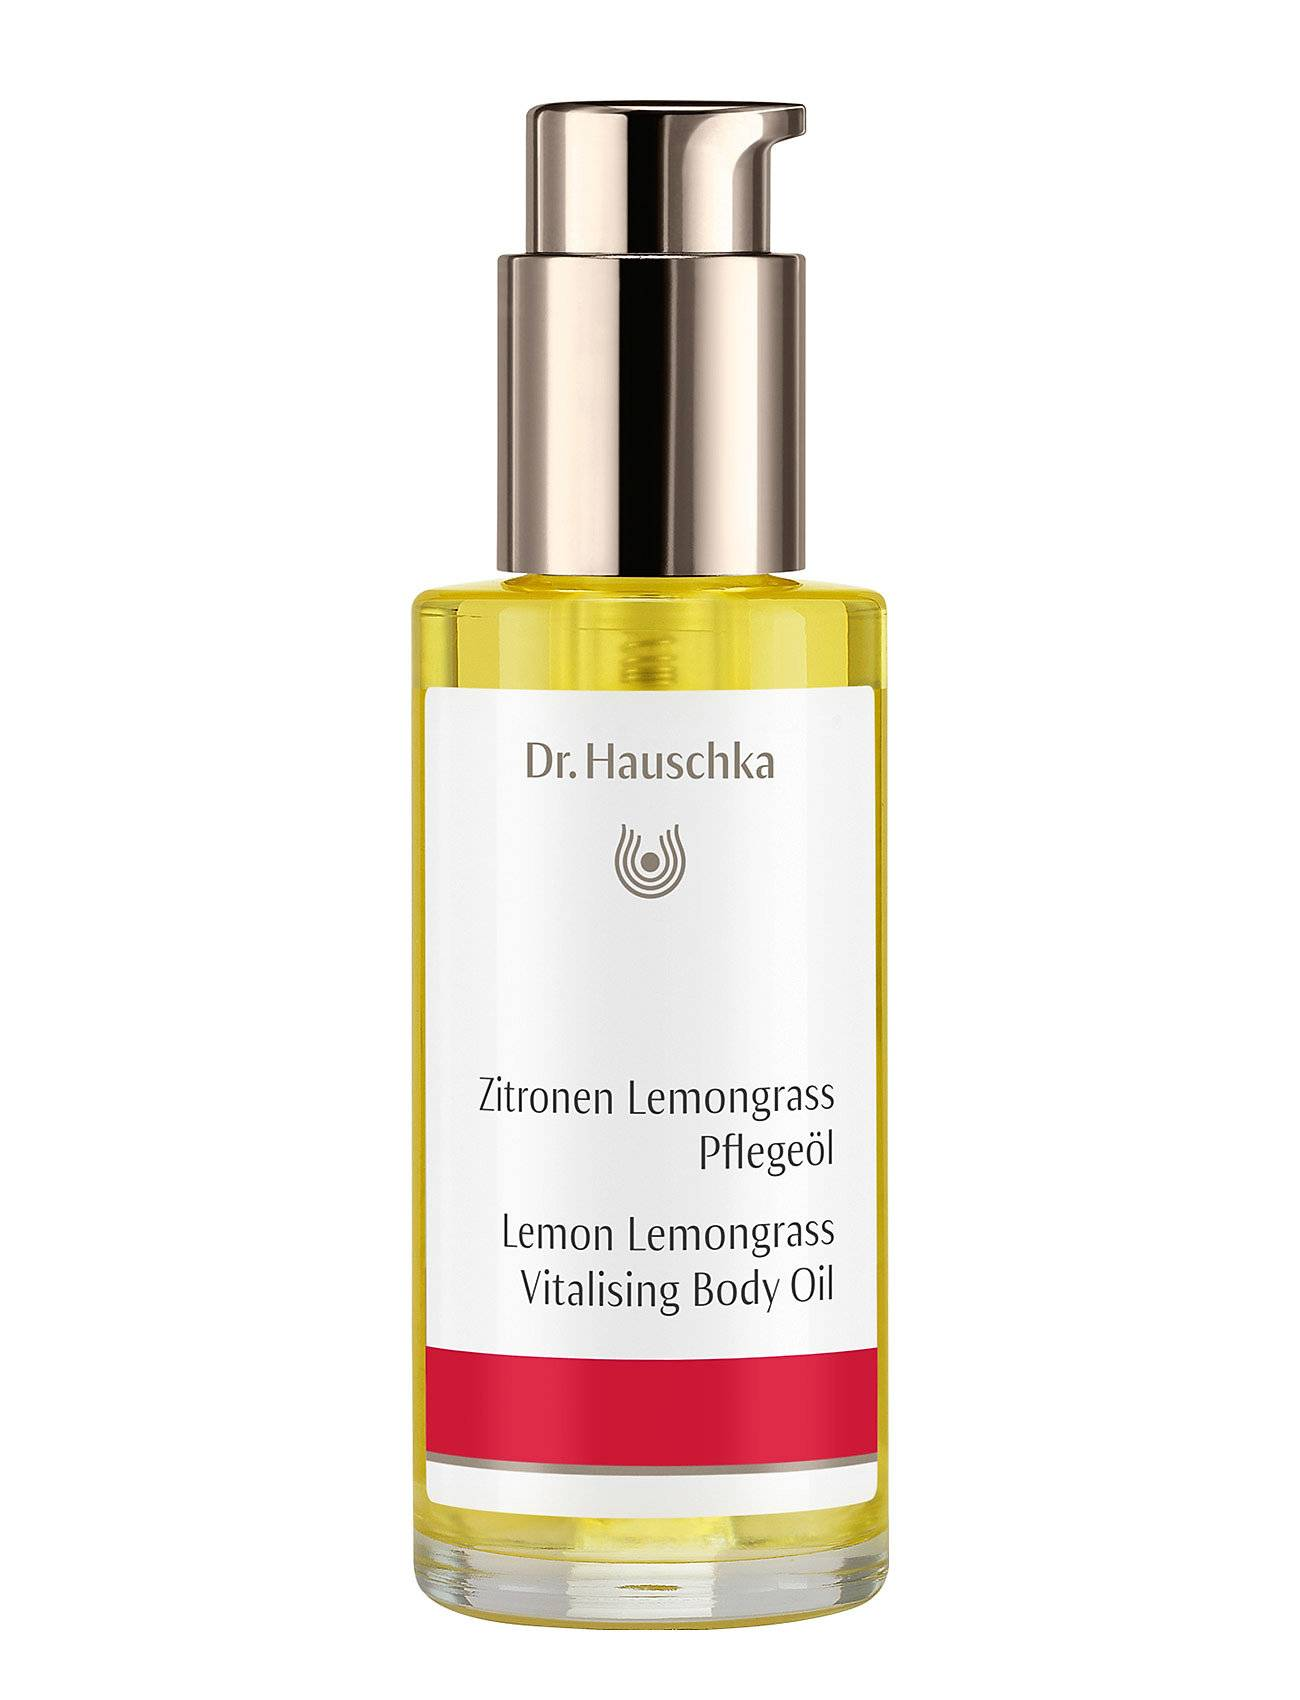 Dr. Hauschka Lemon Lemongrass Body Oil